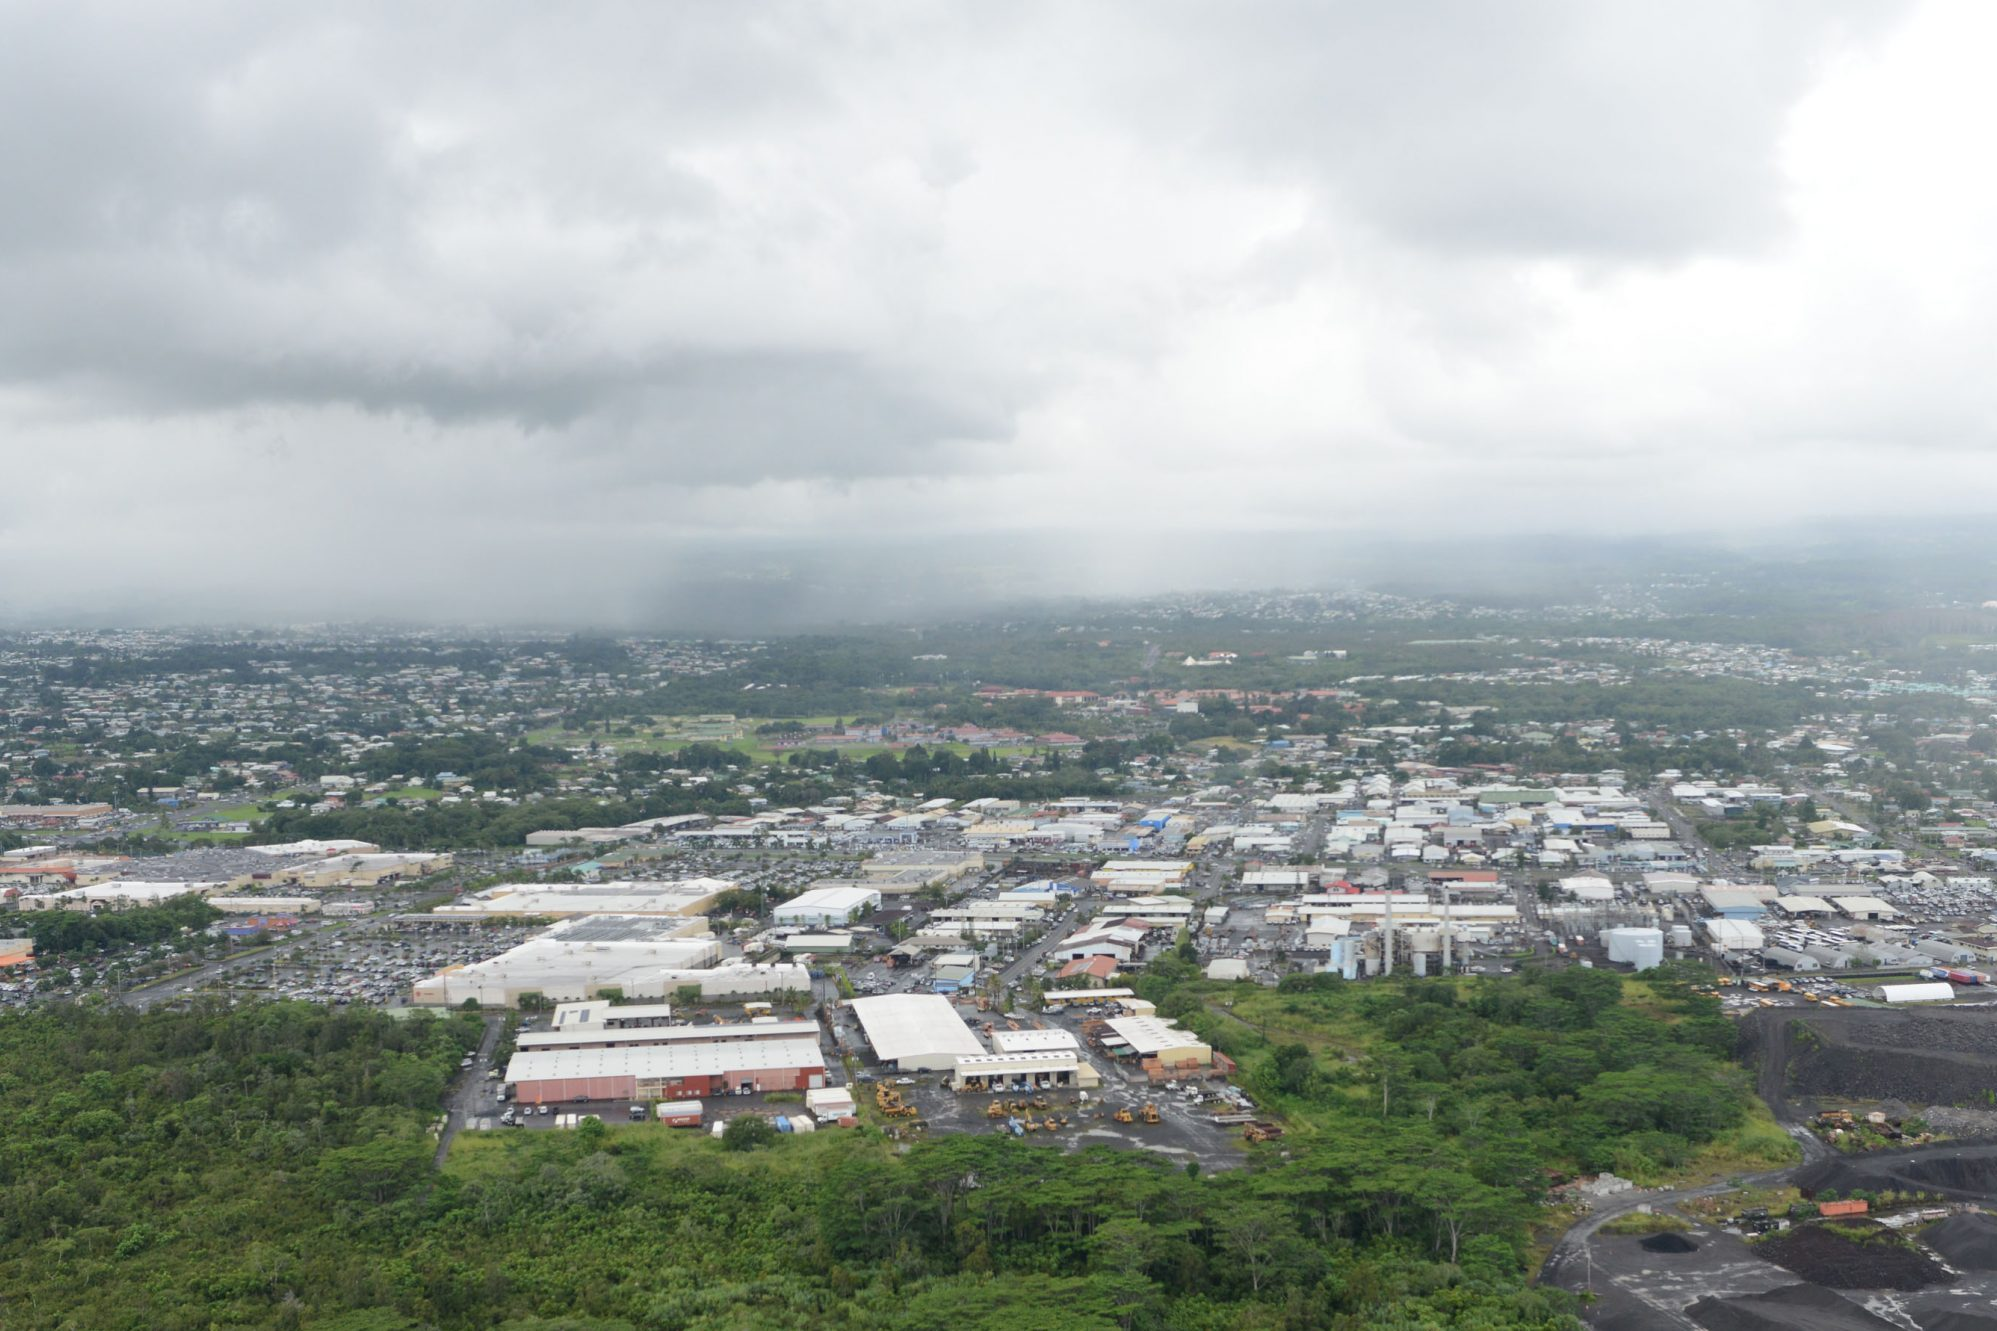 View looking north from the airport as helicopter was flying east out of the airport. Industrial area of Hilo, Hawaii near Airport. Hilo, Hawaii. 29 october 2014. photograph Cory Lum